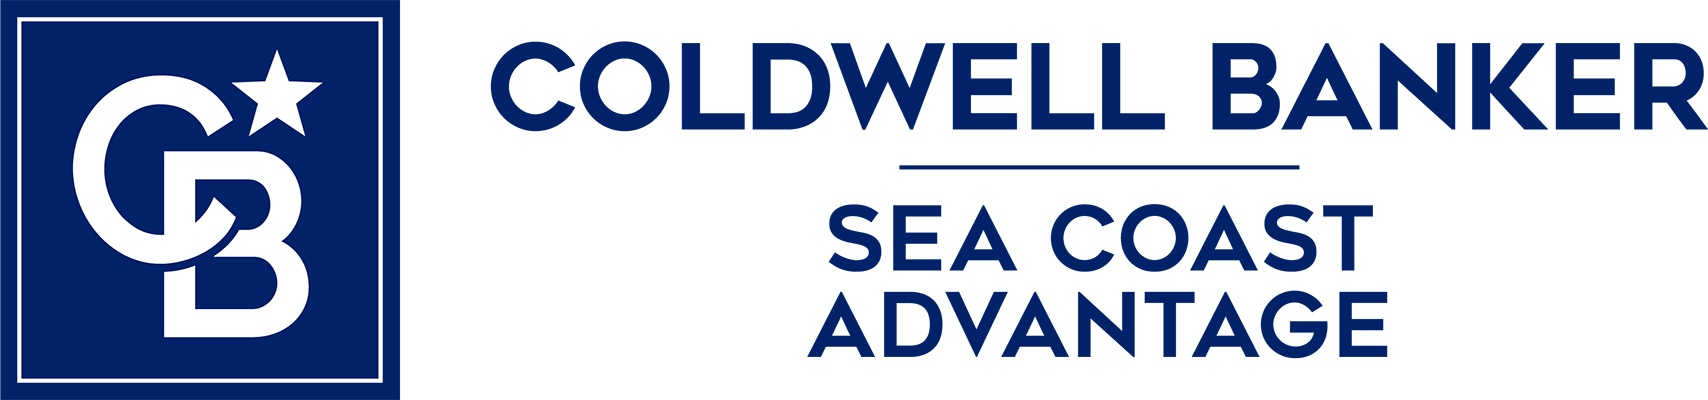 Bill Berry - Coldwell Banker Sea Coast Advantage Realty